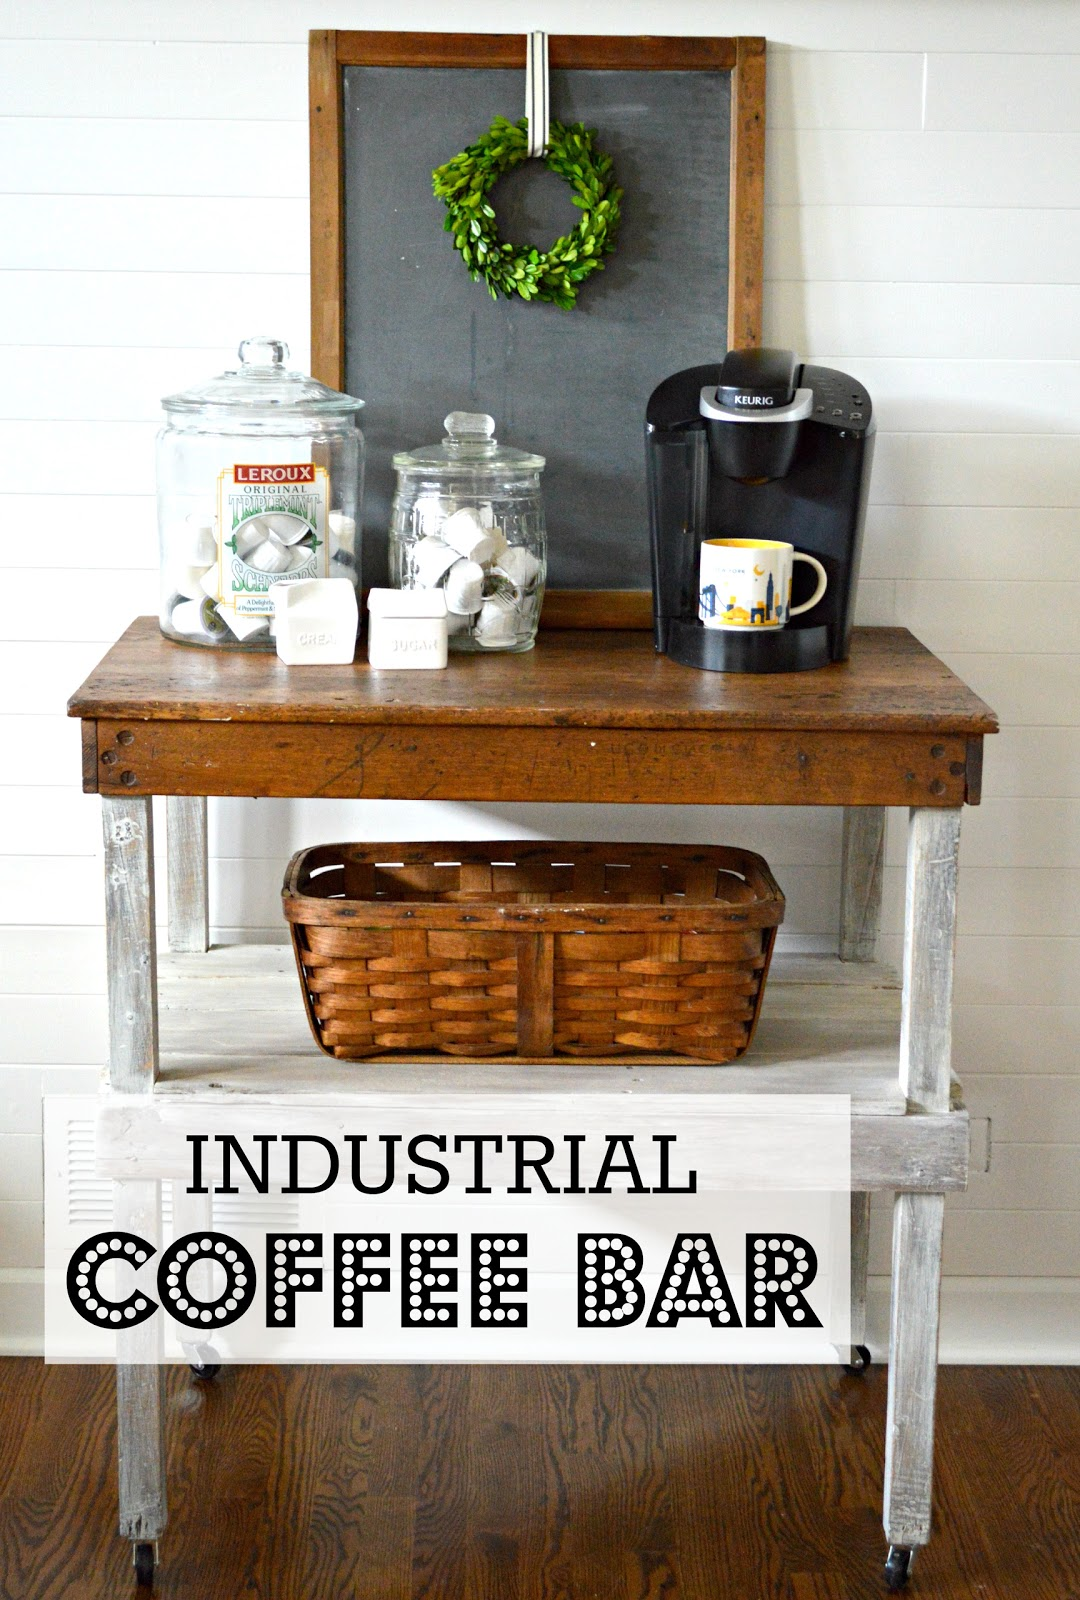 Super My Passion For Decor: Industrial Work Bench Turned Coffee Bar EF59